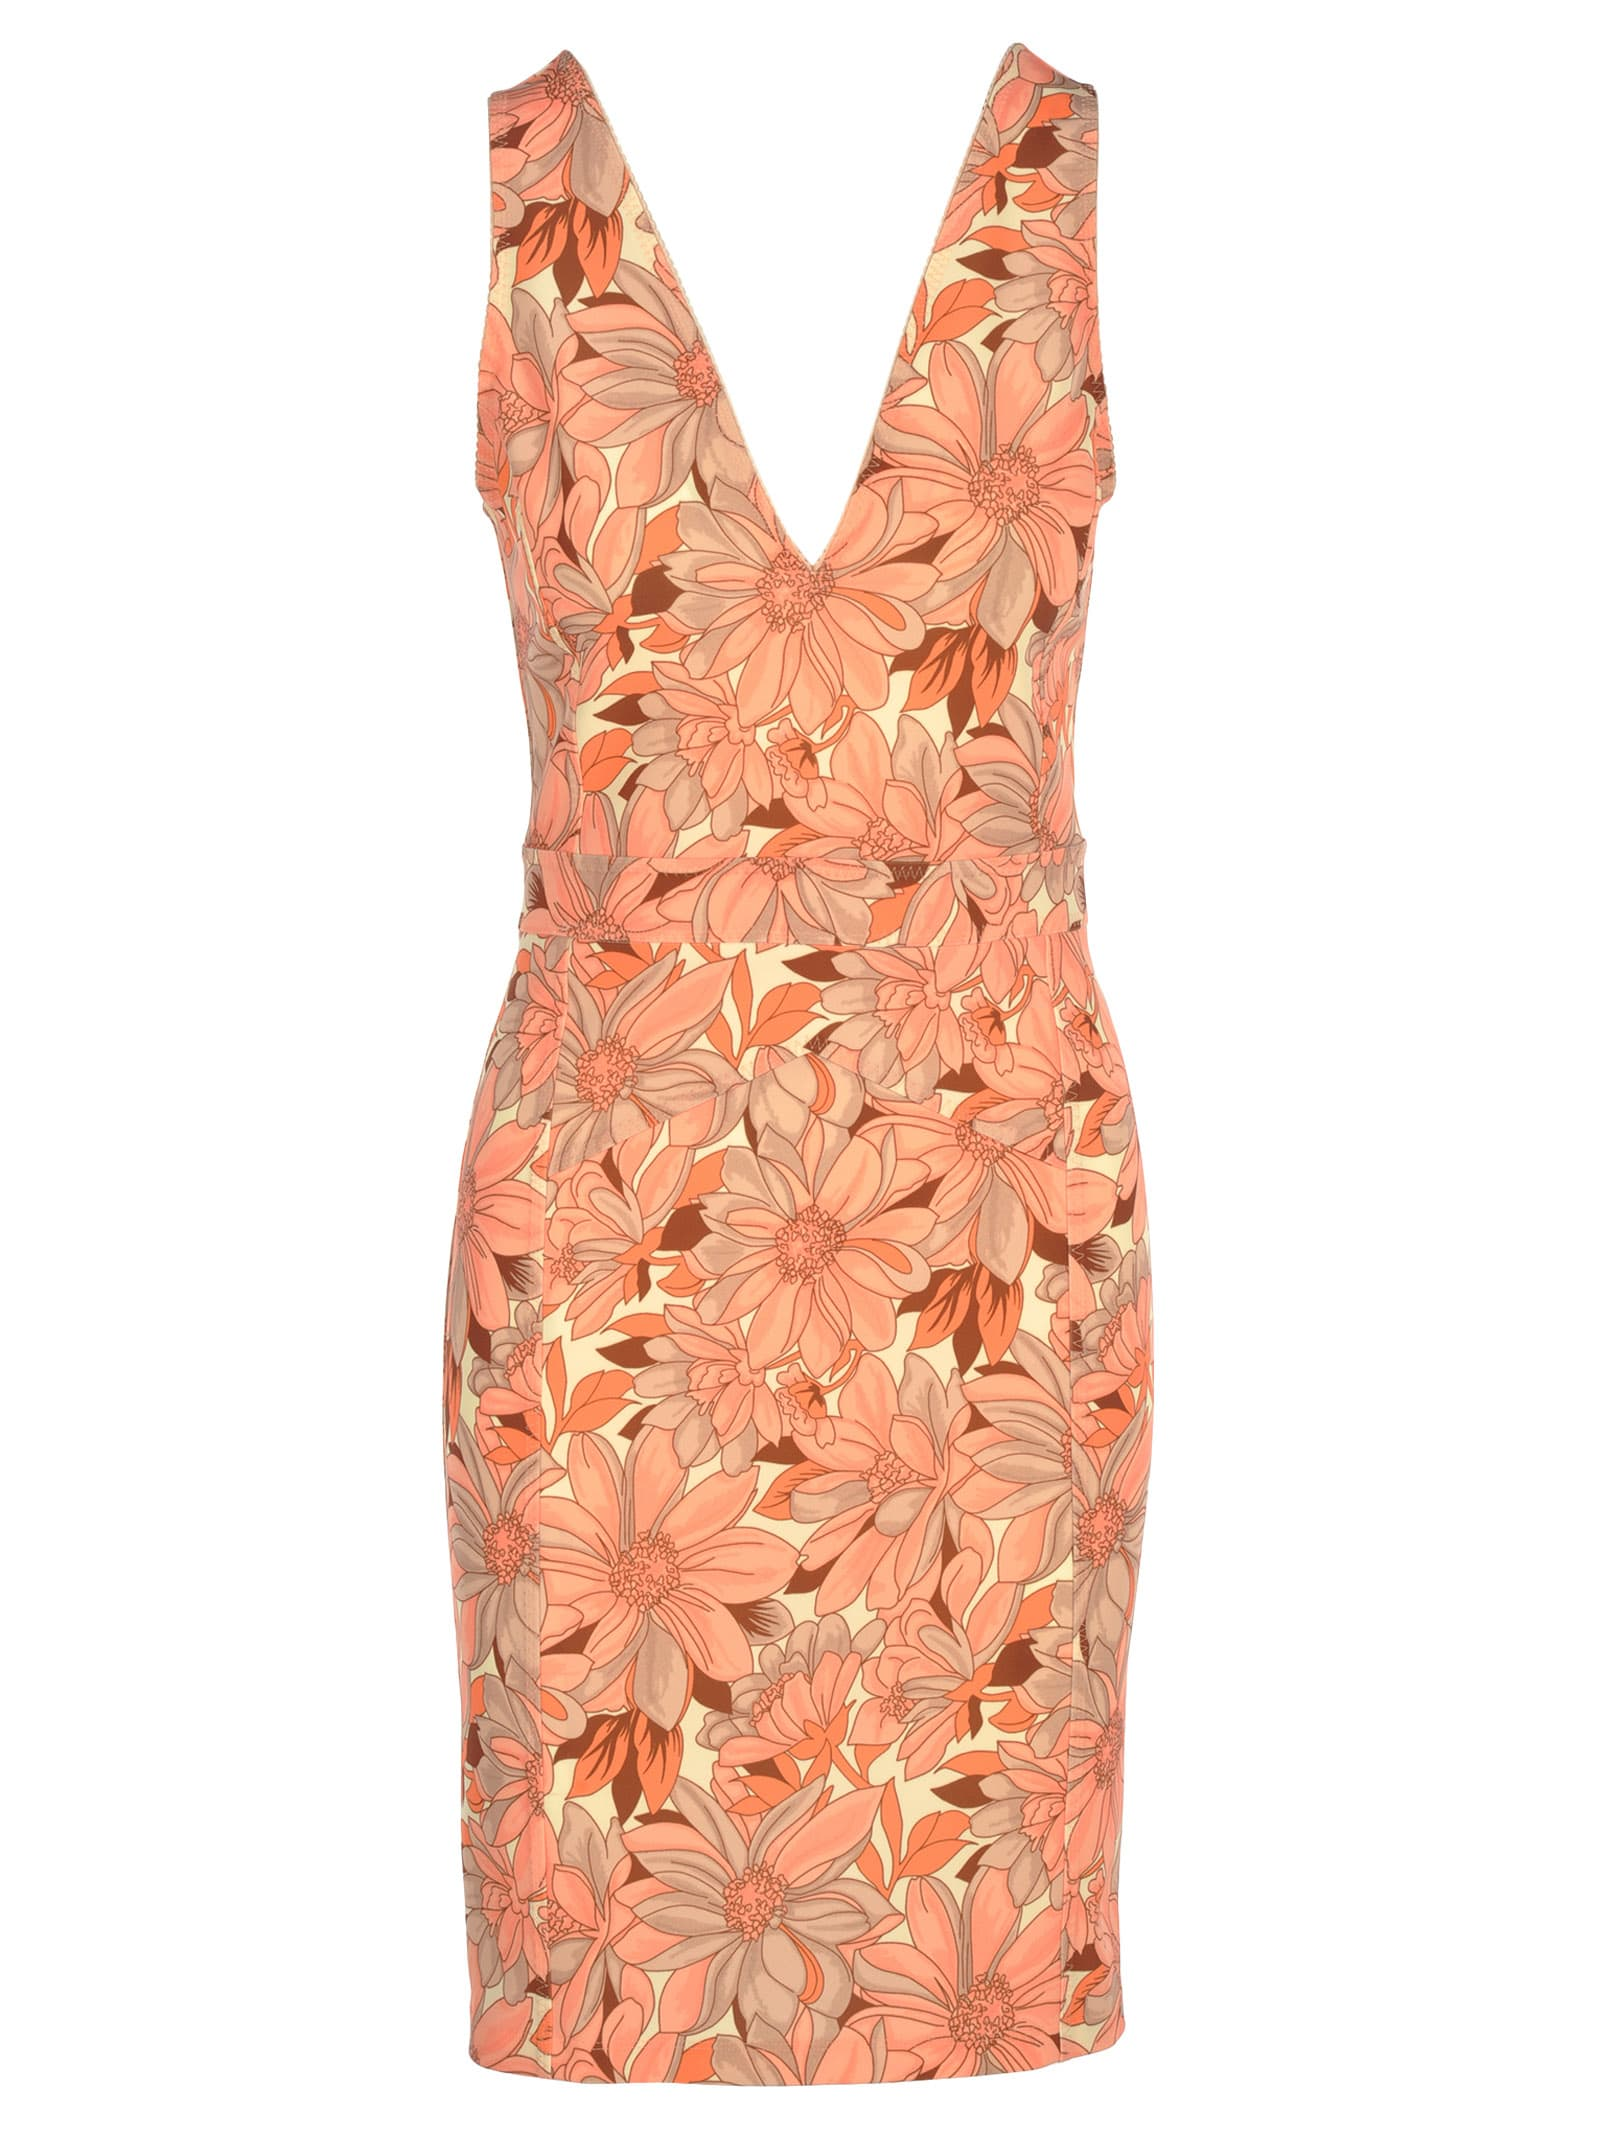 Stella Mccartney Stella Mccartney Floral Dress